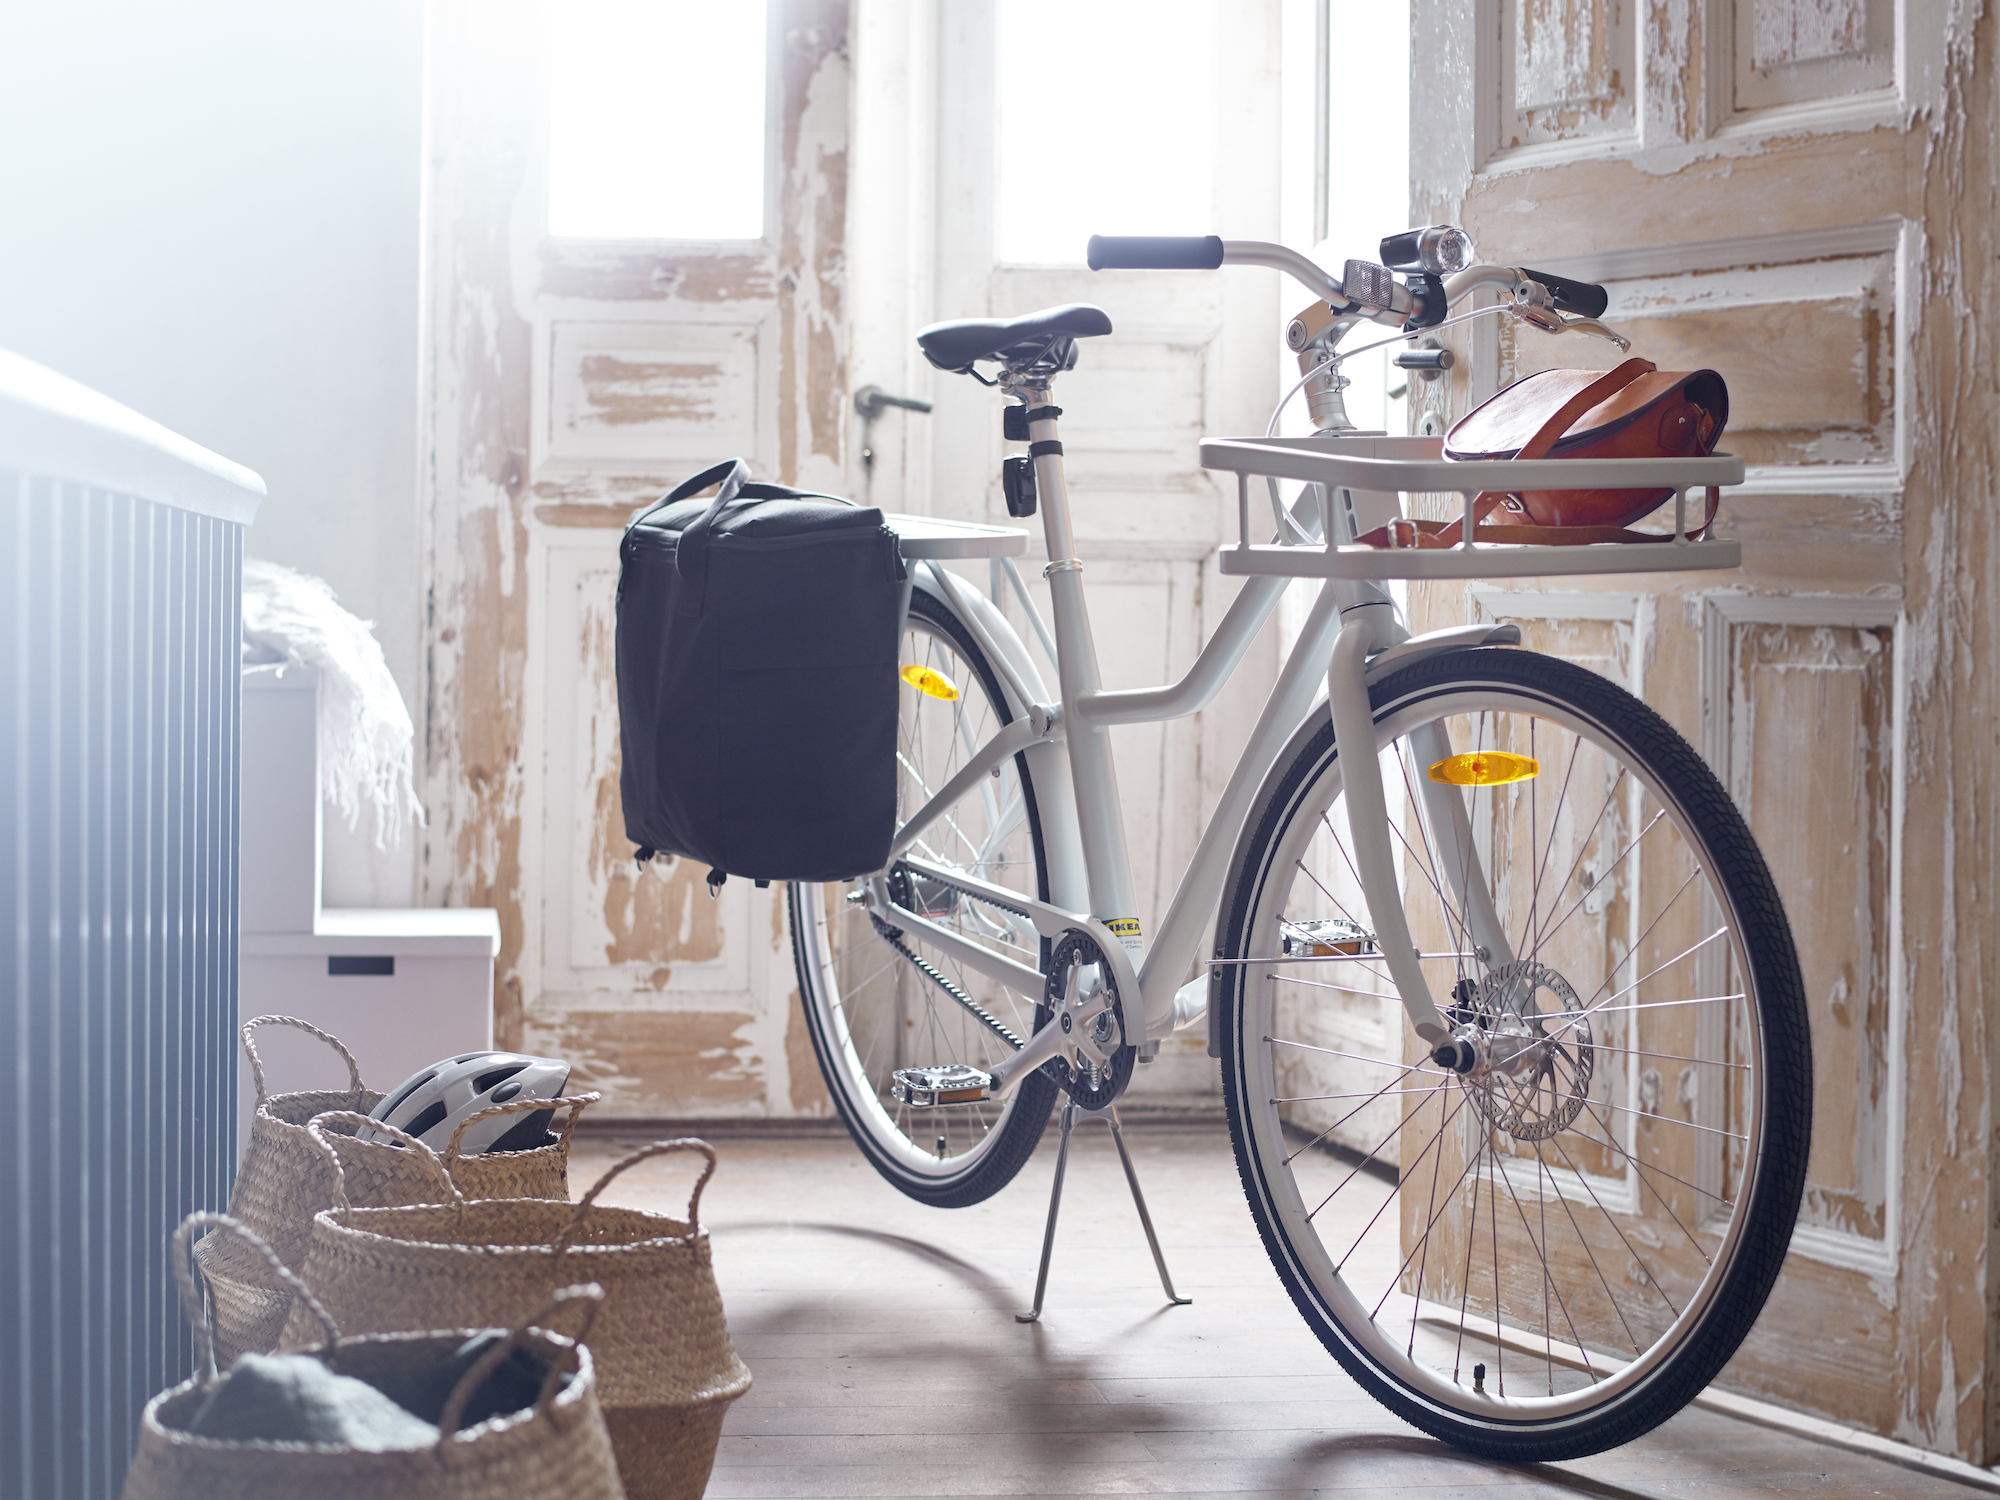 Ikea's sleek new bike is now available for $500